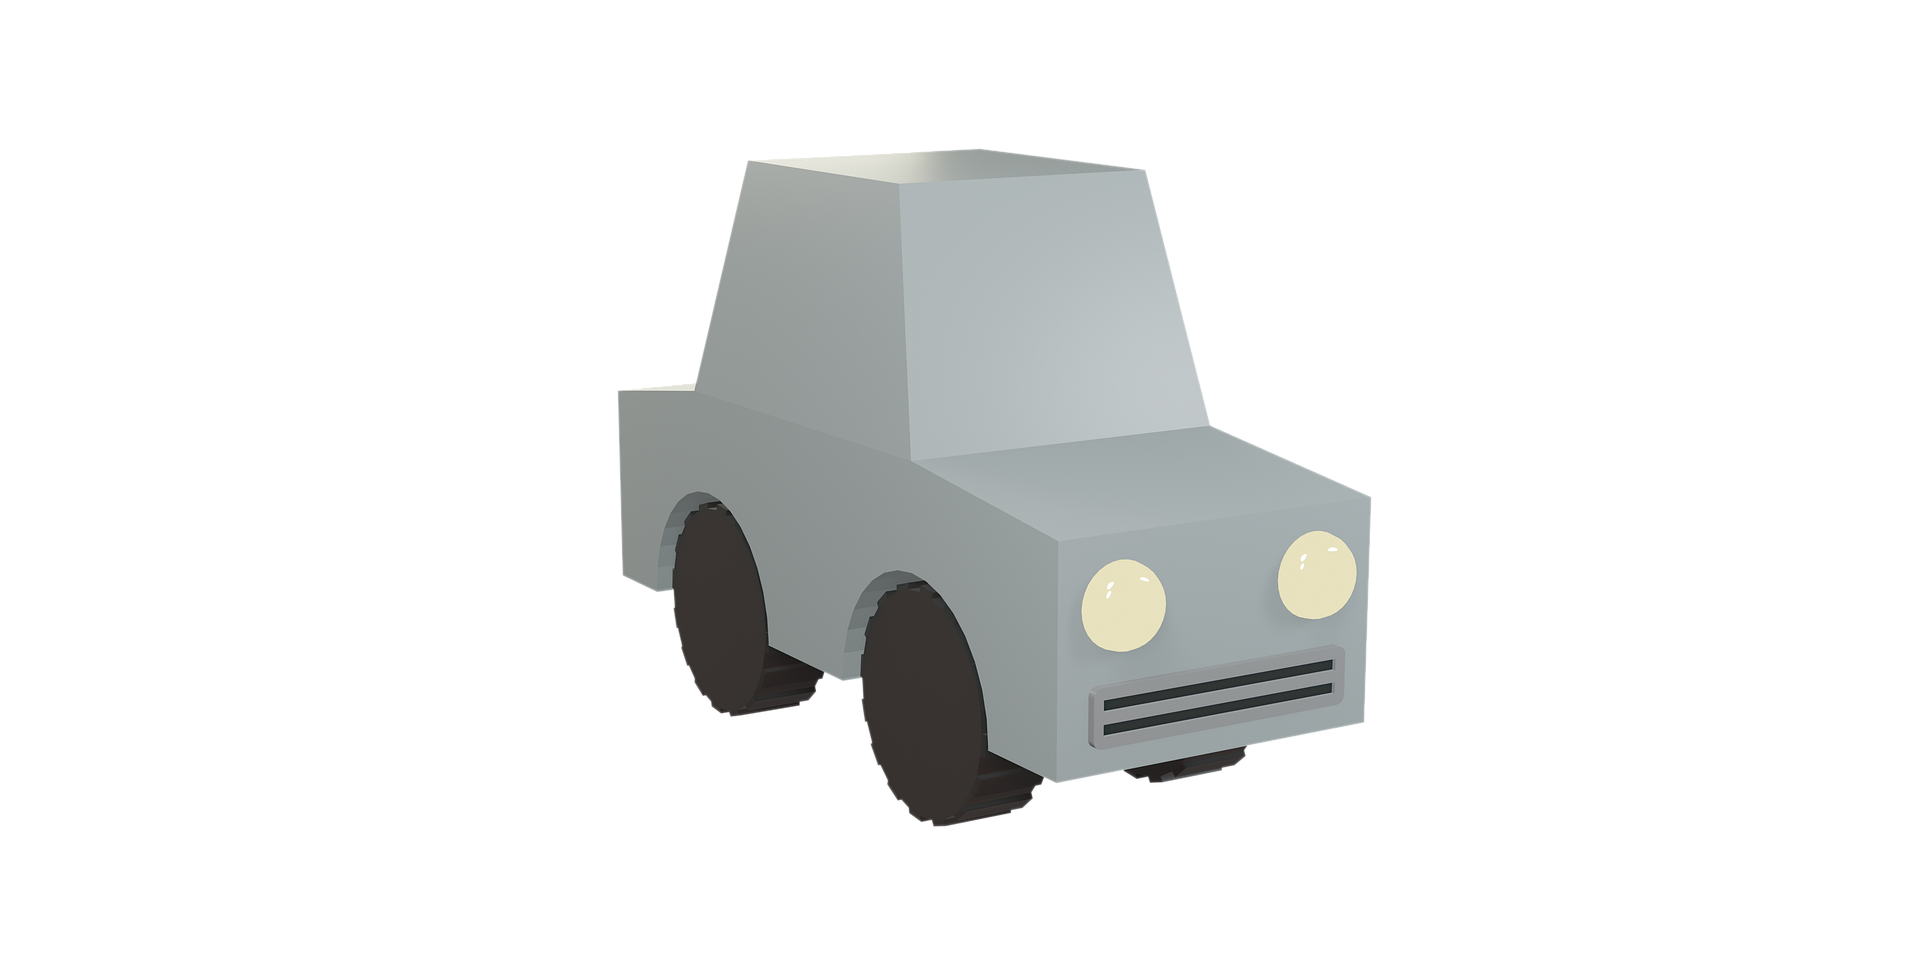 3d low poly model of car